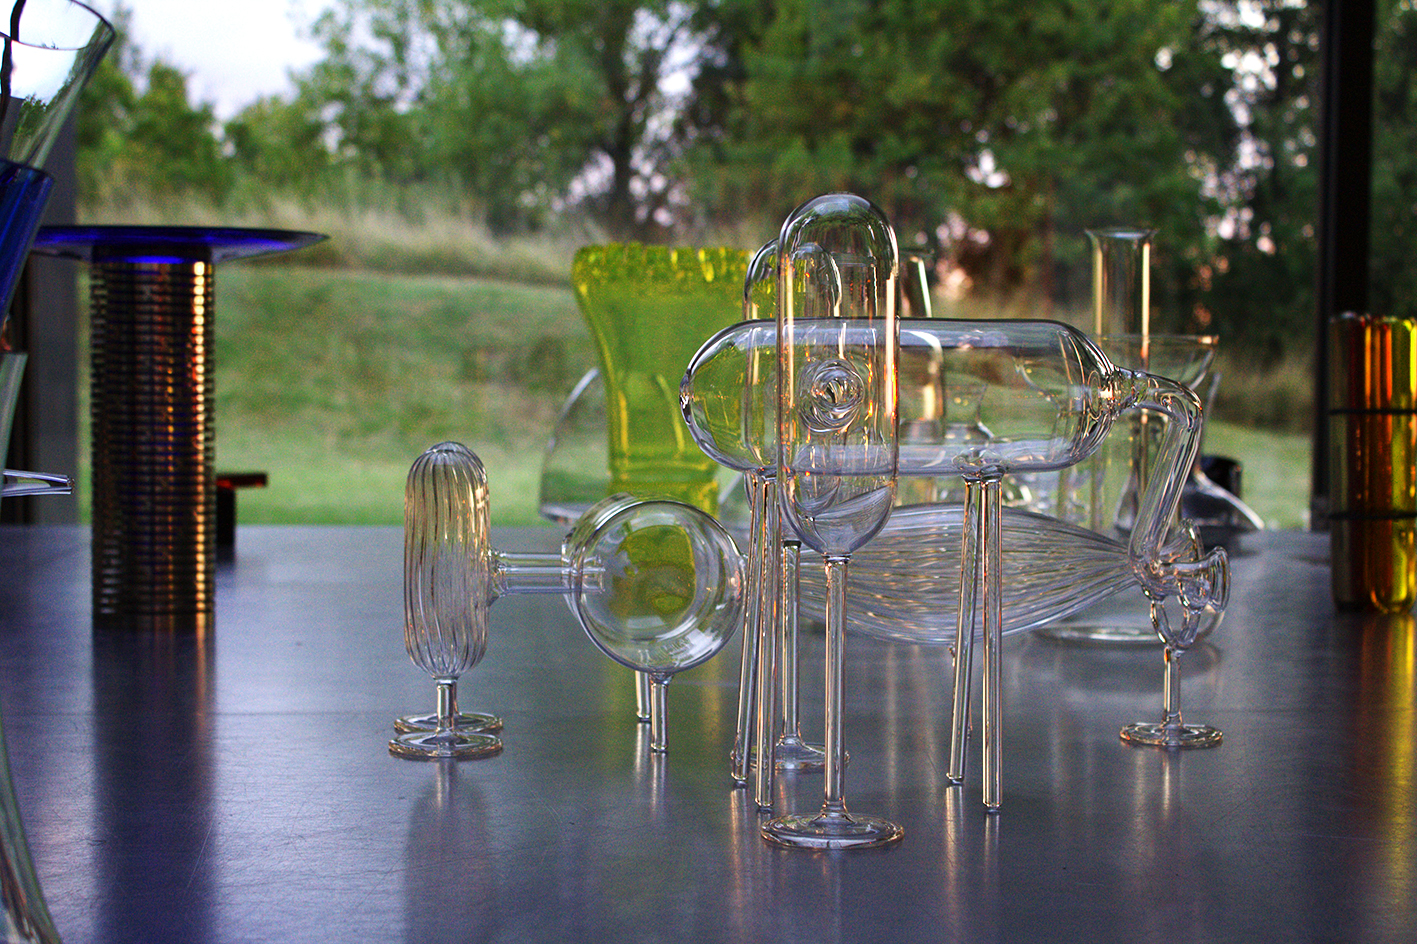 Male & Female Systems, 2014  Borosilicate glass  CNAP collection, France